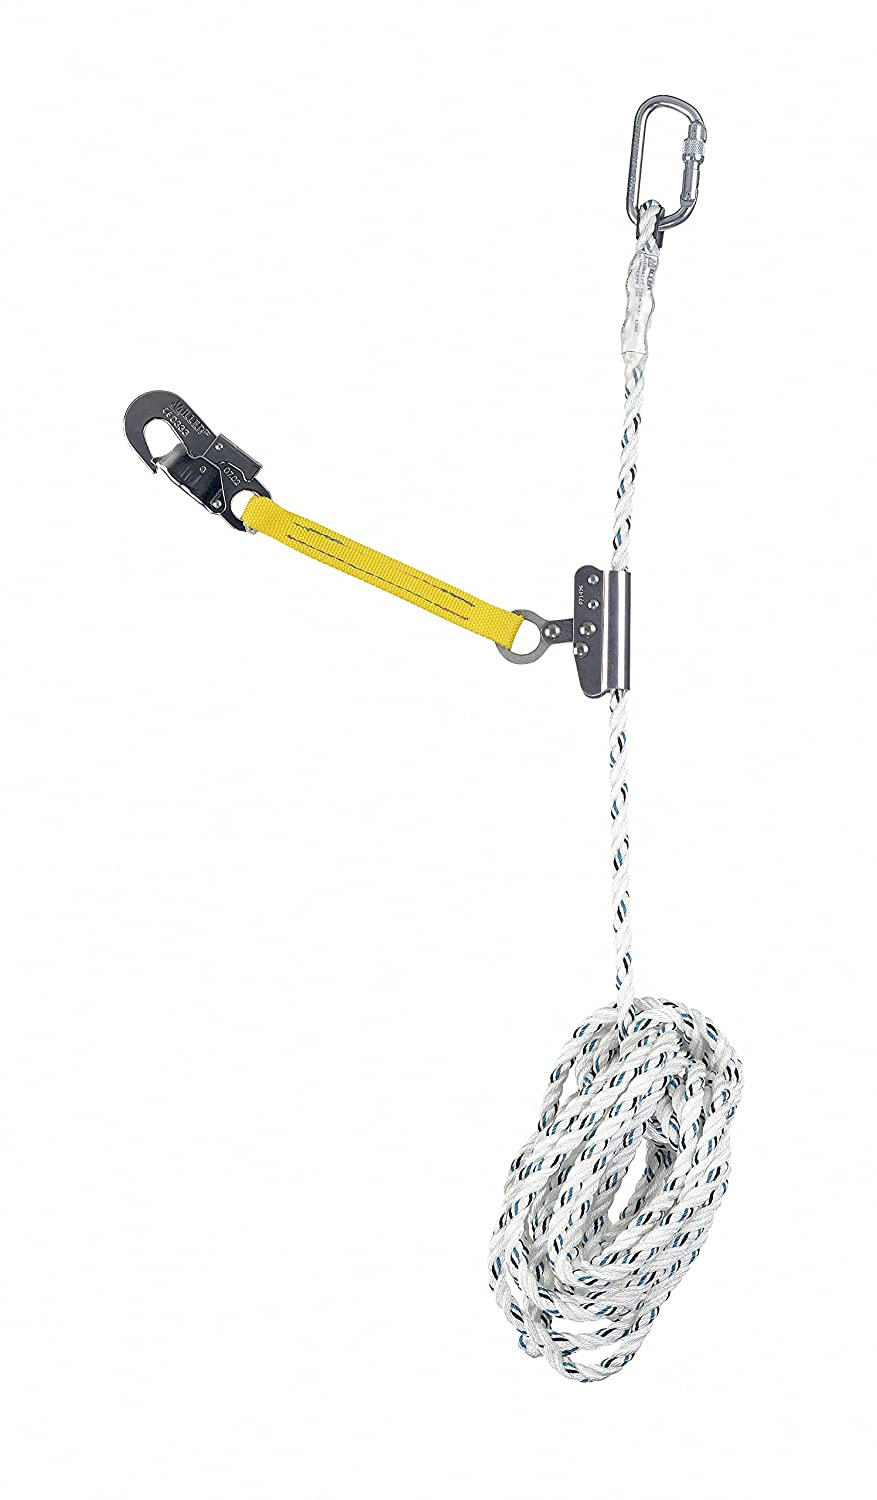 Honeywell Miller  1011700 Automatic Rope Grab 12mm Anchorage 15M